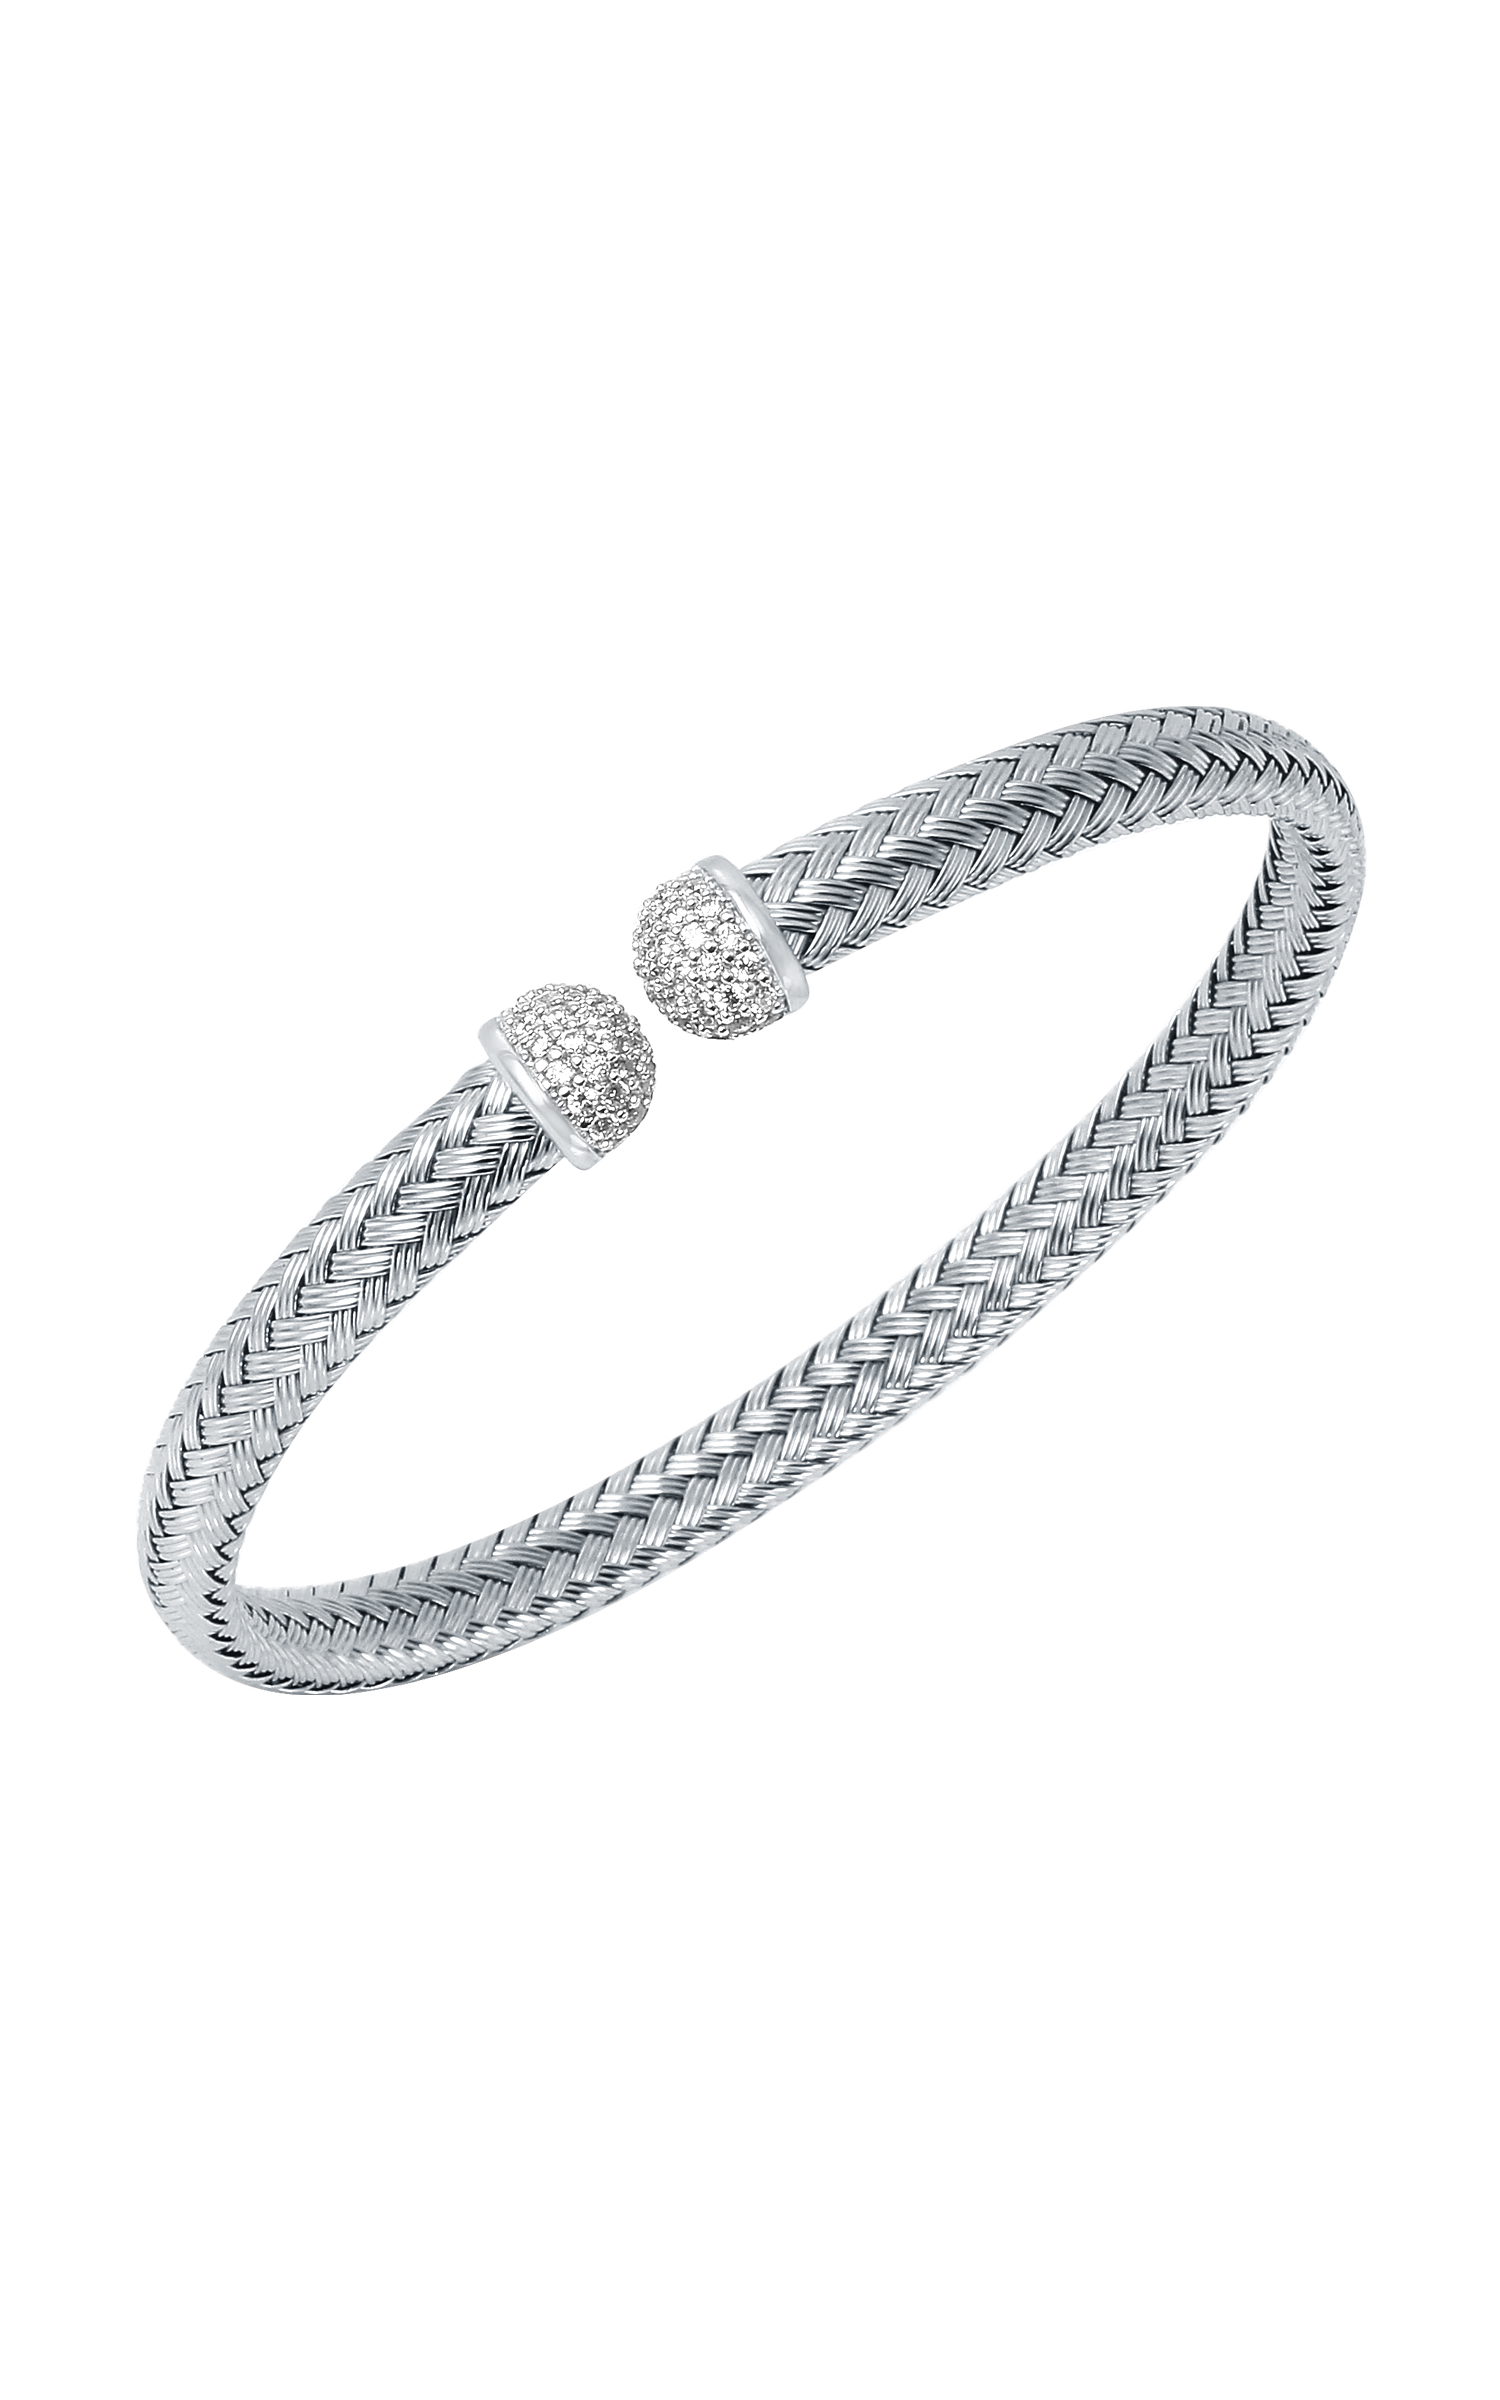 Charles Garnier Paolo Collection Bracelet MLC8192WZ product image